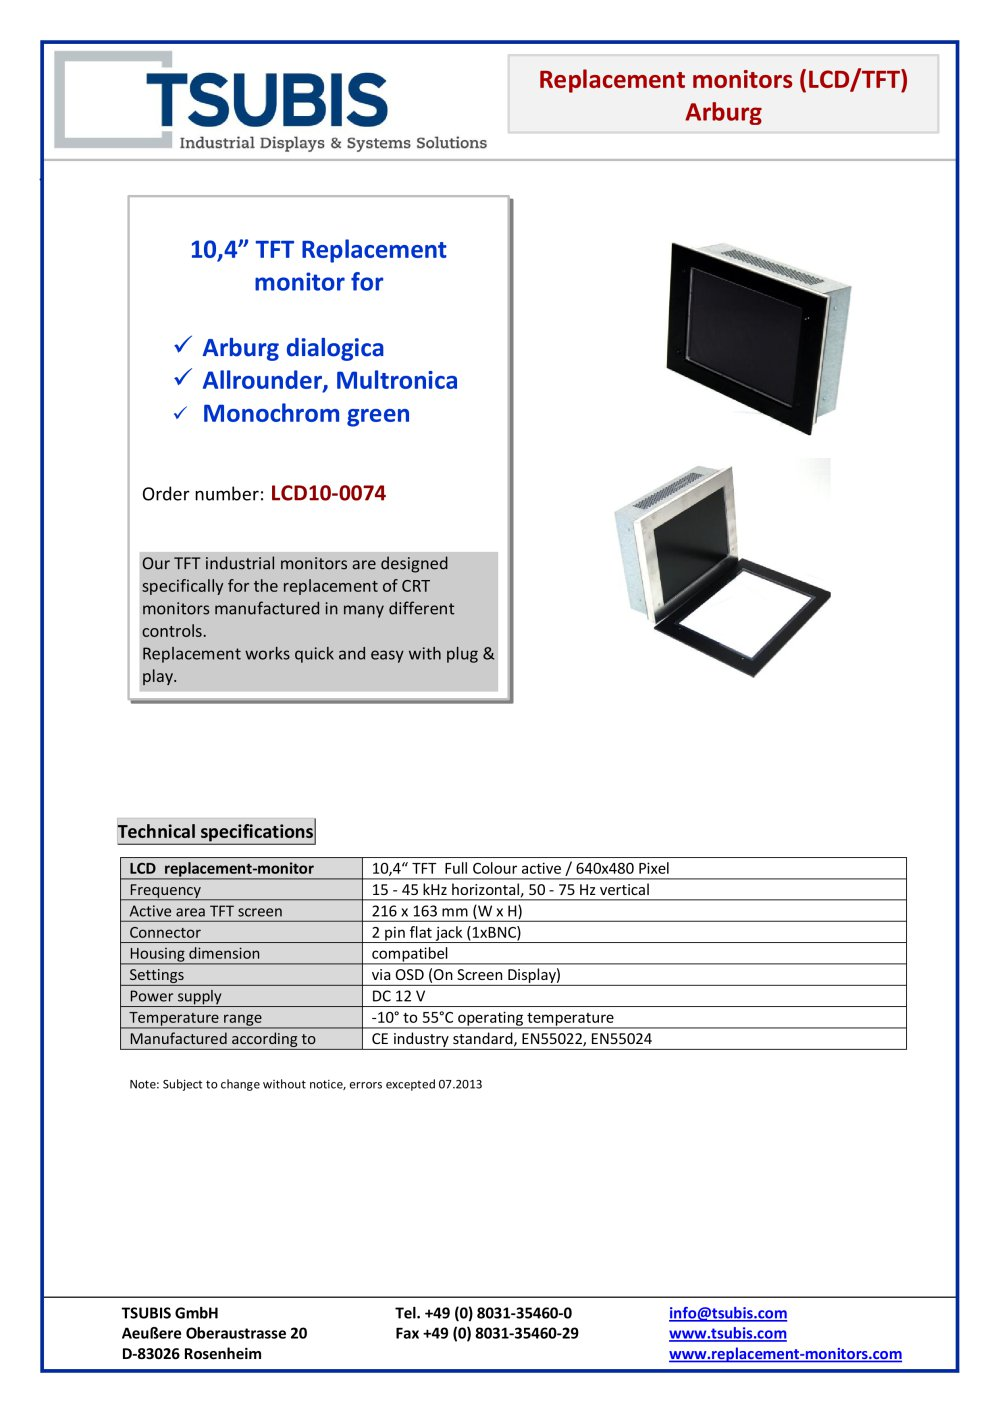 Replacement Monitor For Arburga Dialogic Tsubis Pdf Catalogue Crt Diagram 1 Pages